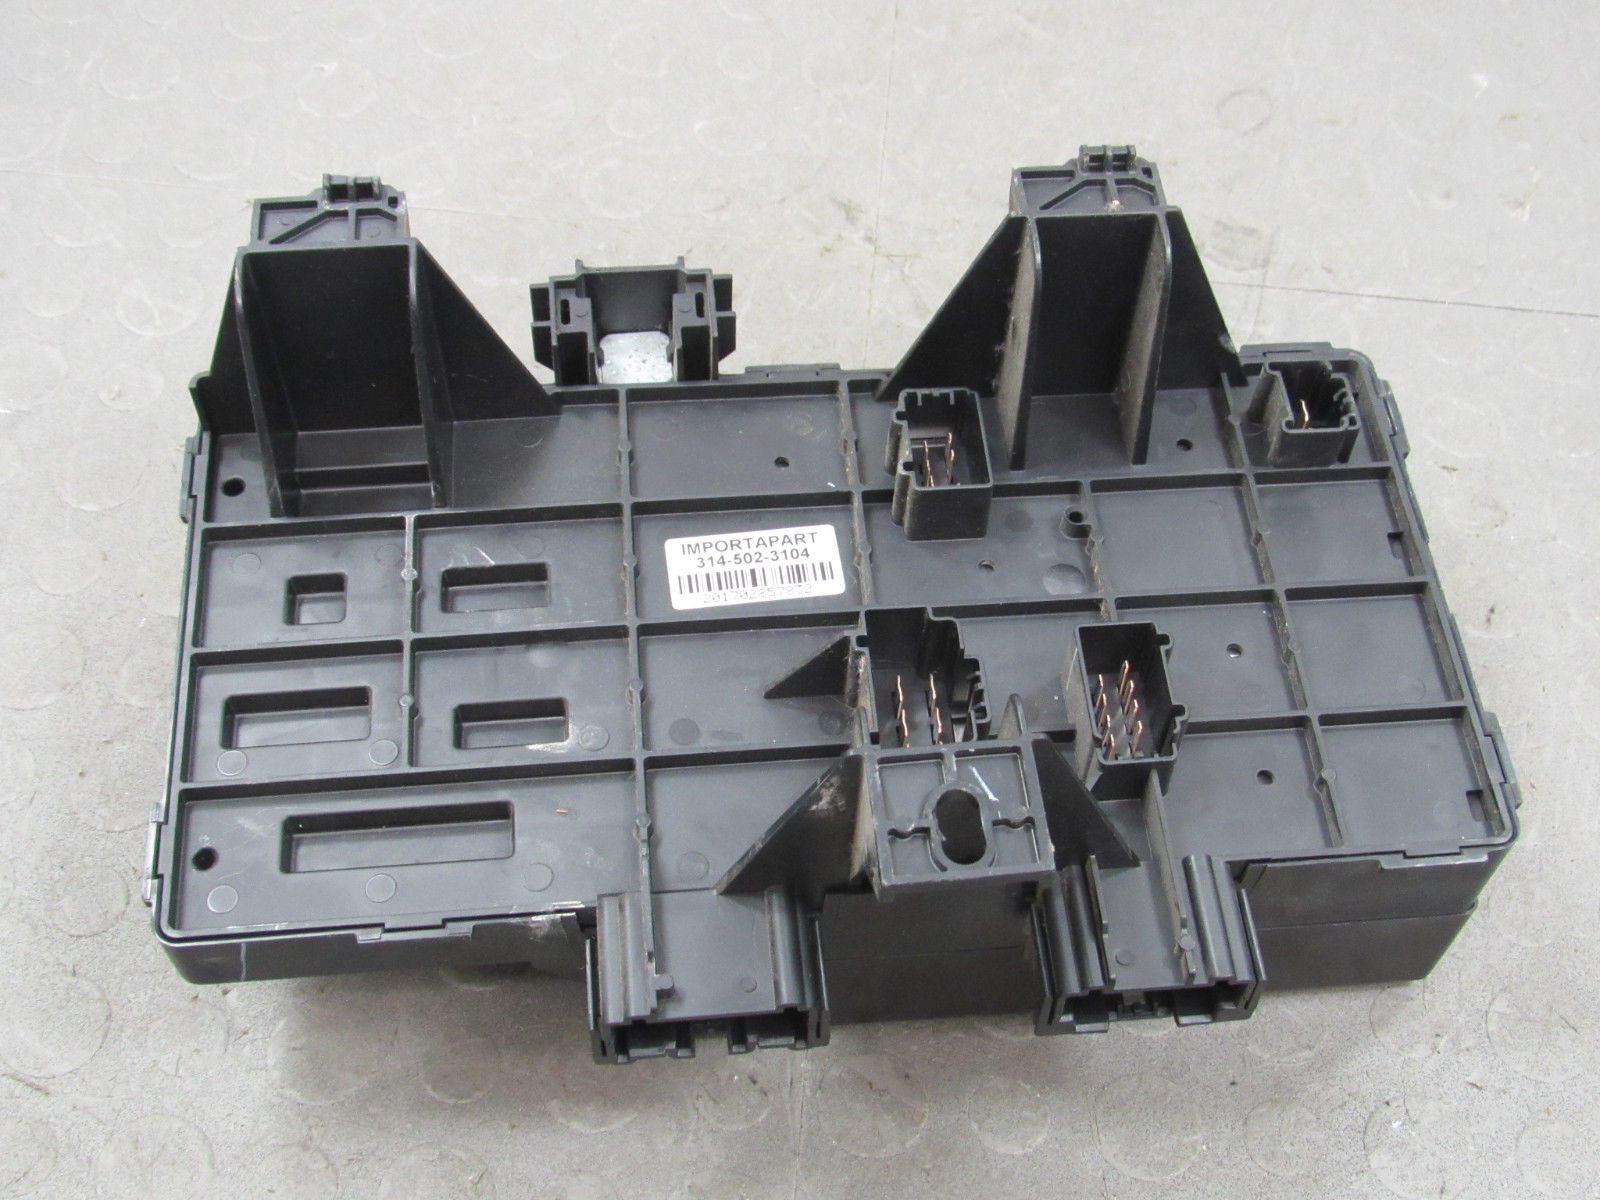 hight resolution of 04 expedition navigator interior fuse relay box block center 4l7t 14a067 ae ac